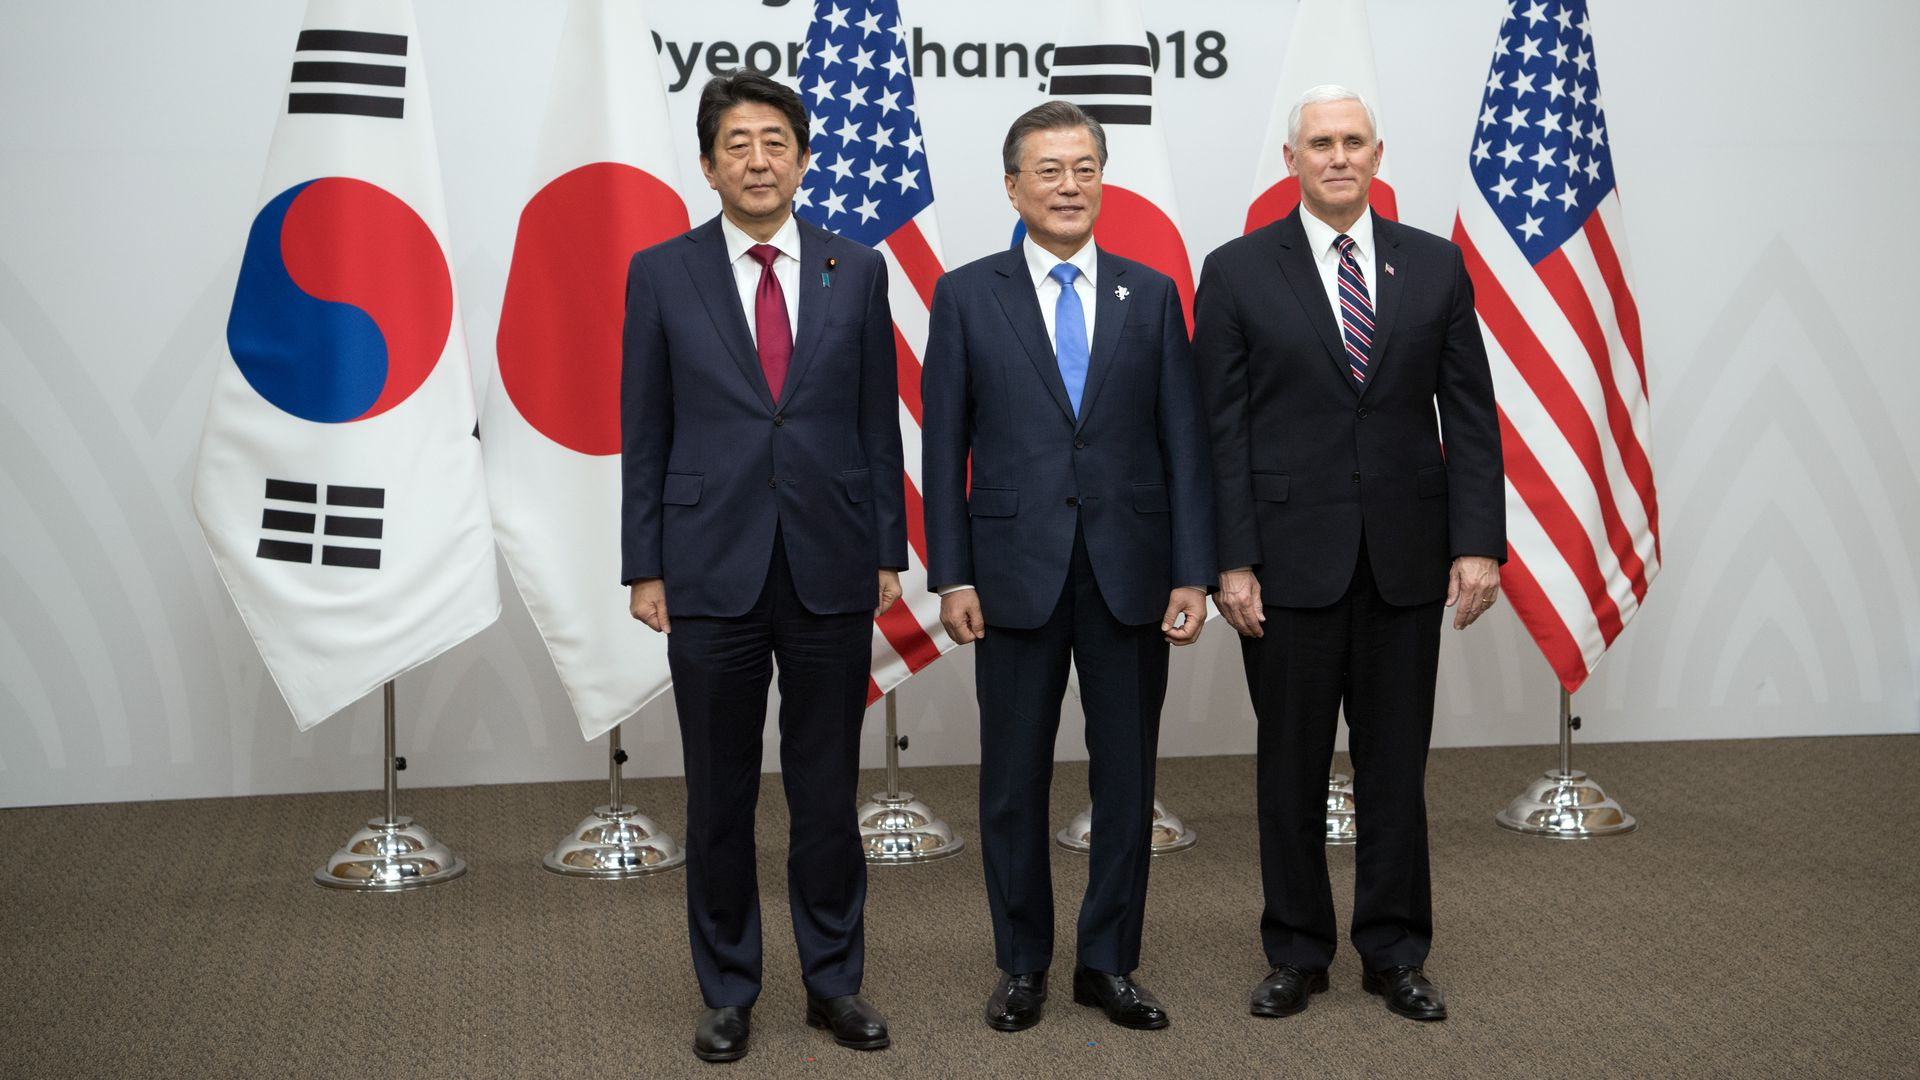 Mike Pence, Shinzo Abe, Moon Jae-in